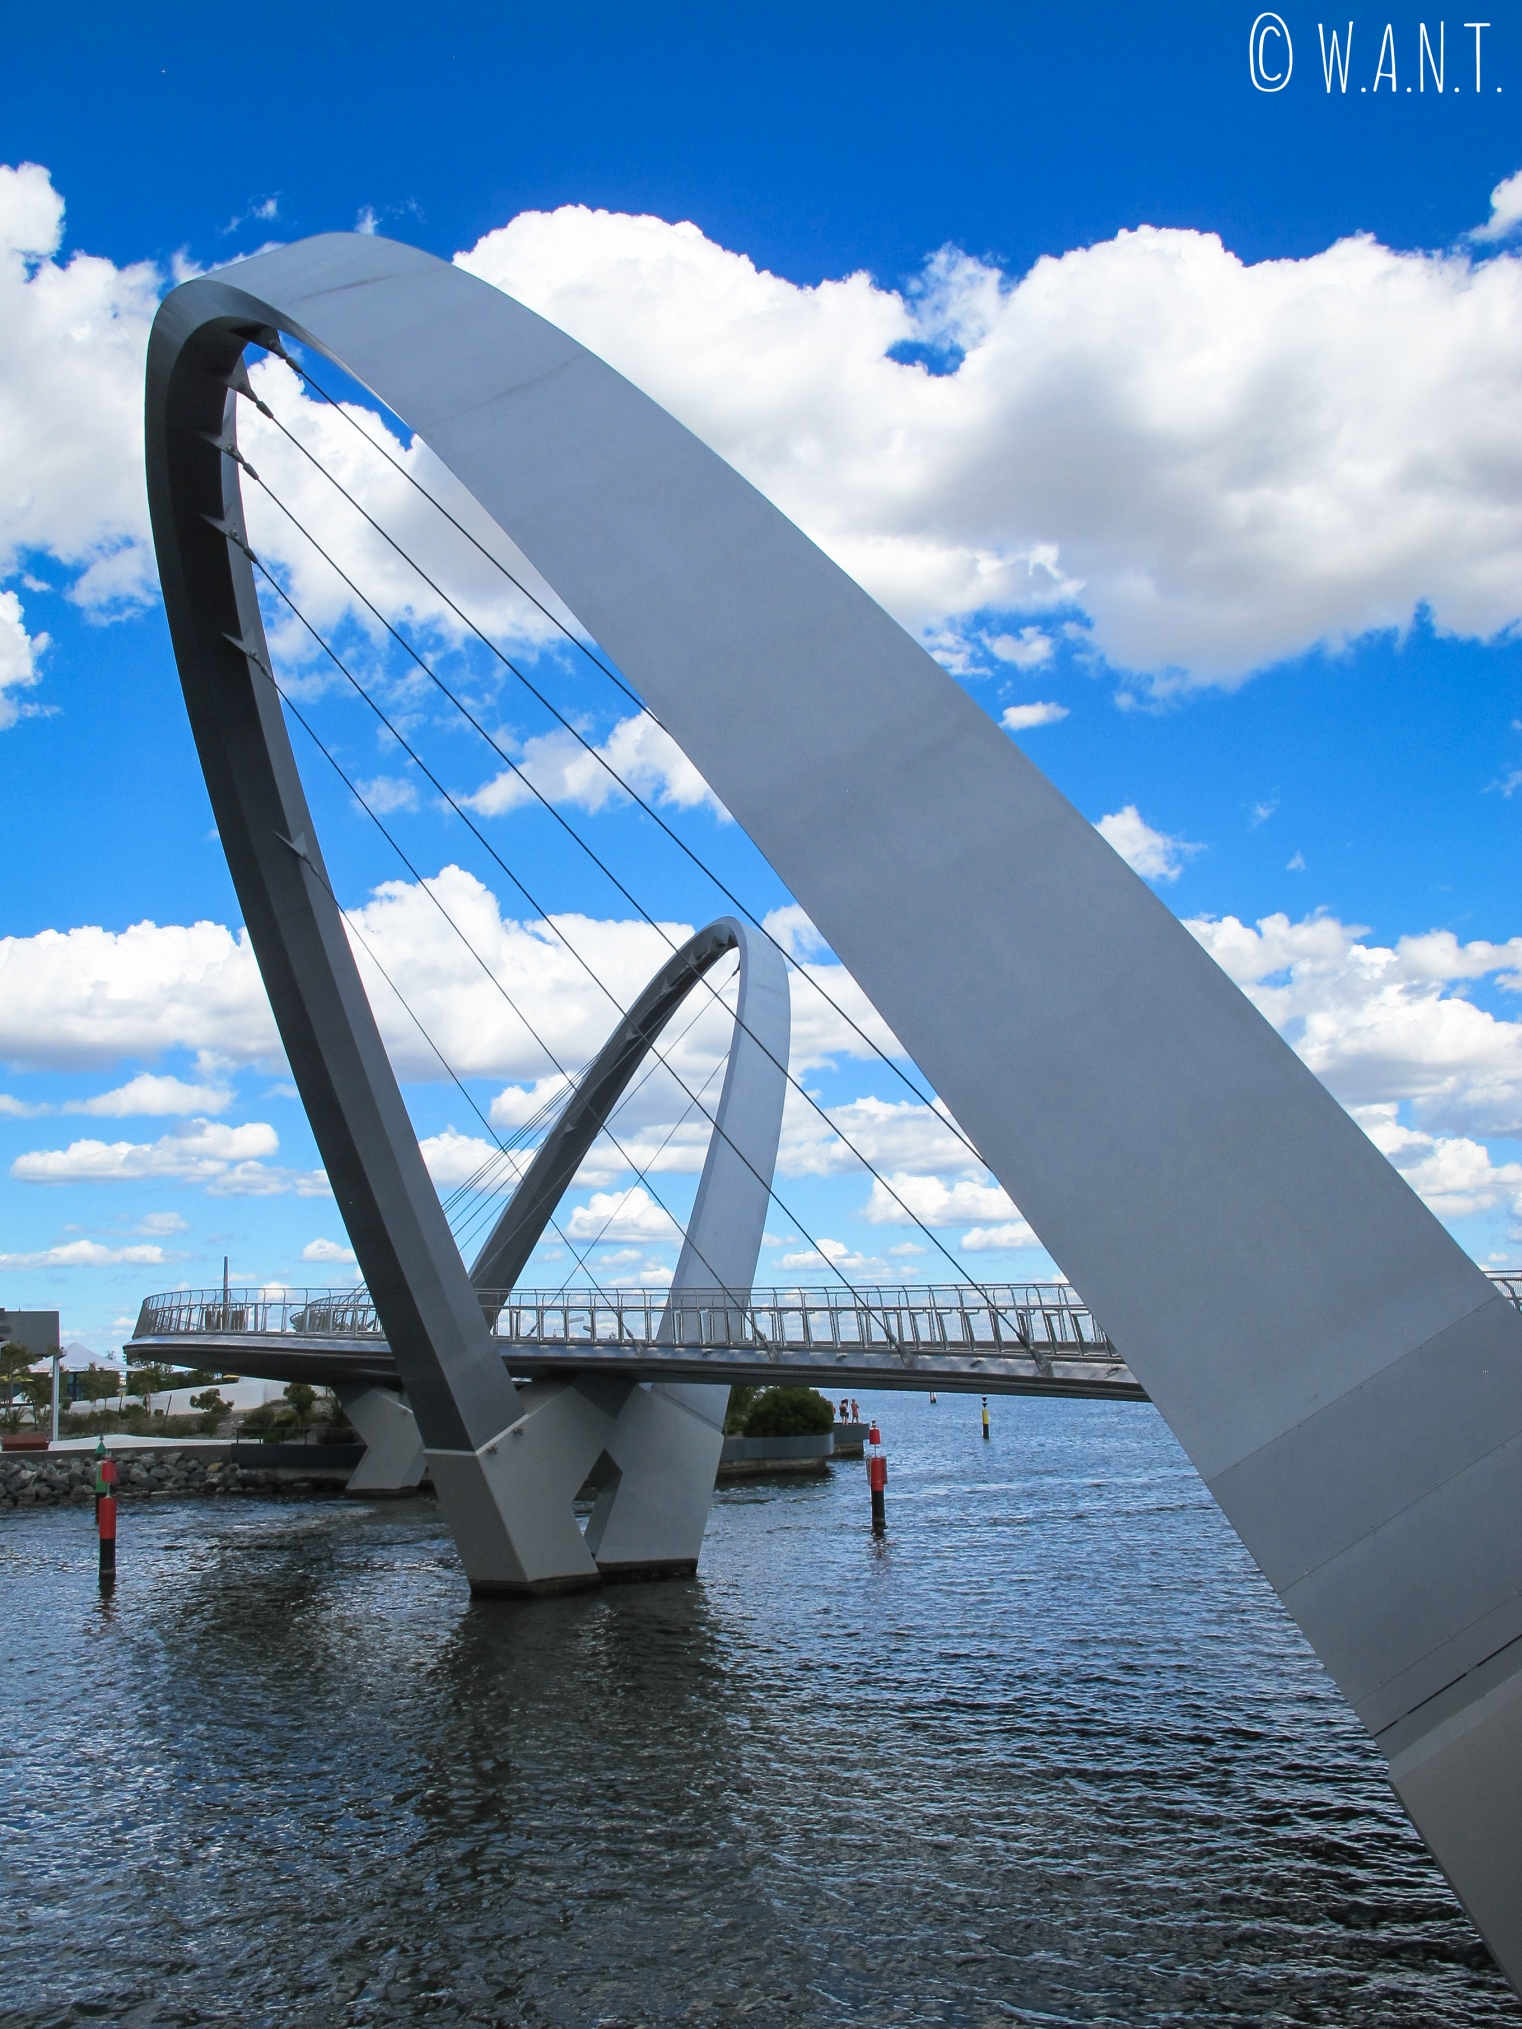 Le pont du Elizabeth Quay de Perth dont le design contemporain a rendu iconique le lieu